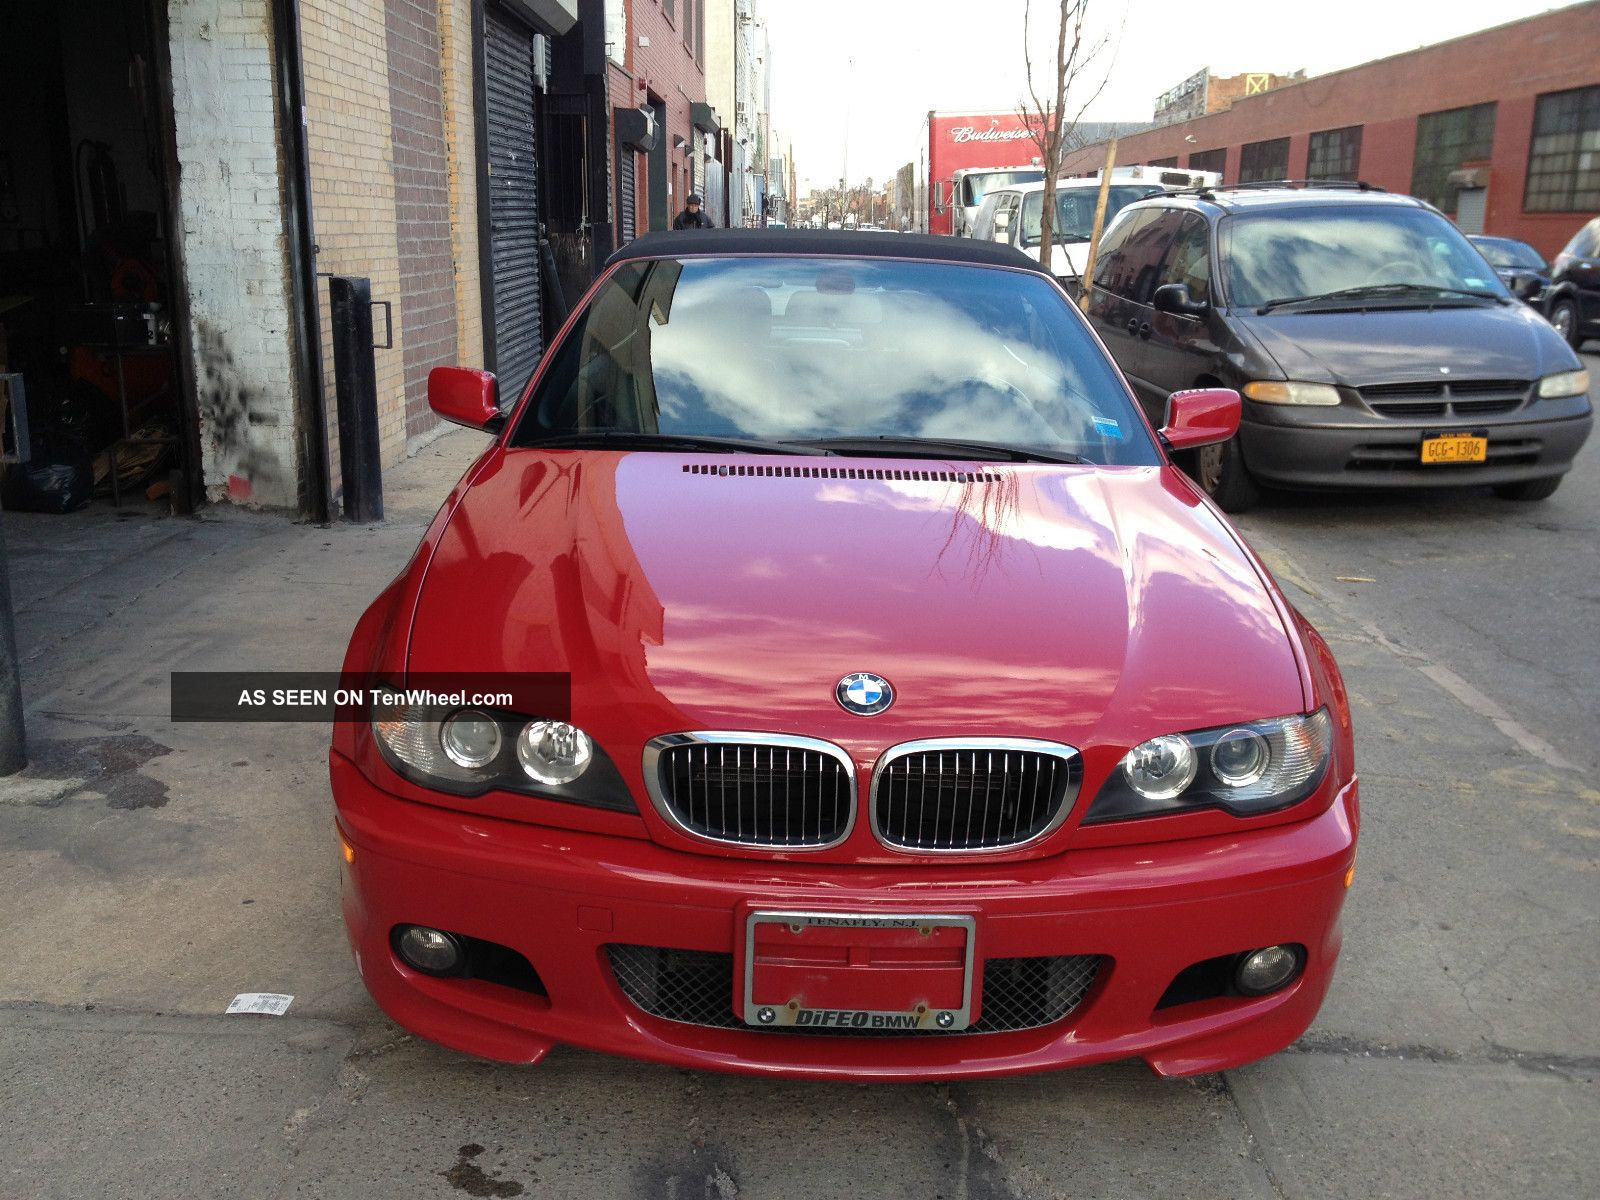 2005 Bmw 330ci Convertible,  M Performance Pkg,  59k,  Red 100%feed 3-Series photo